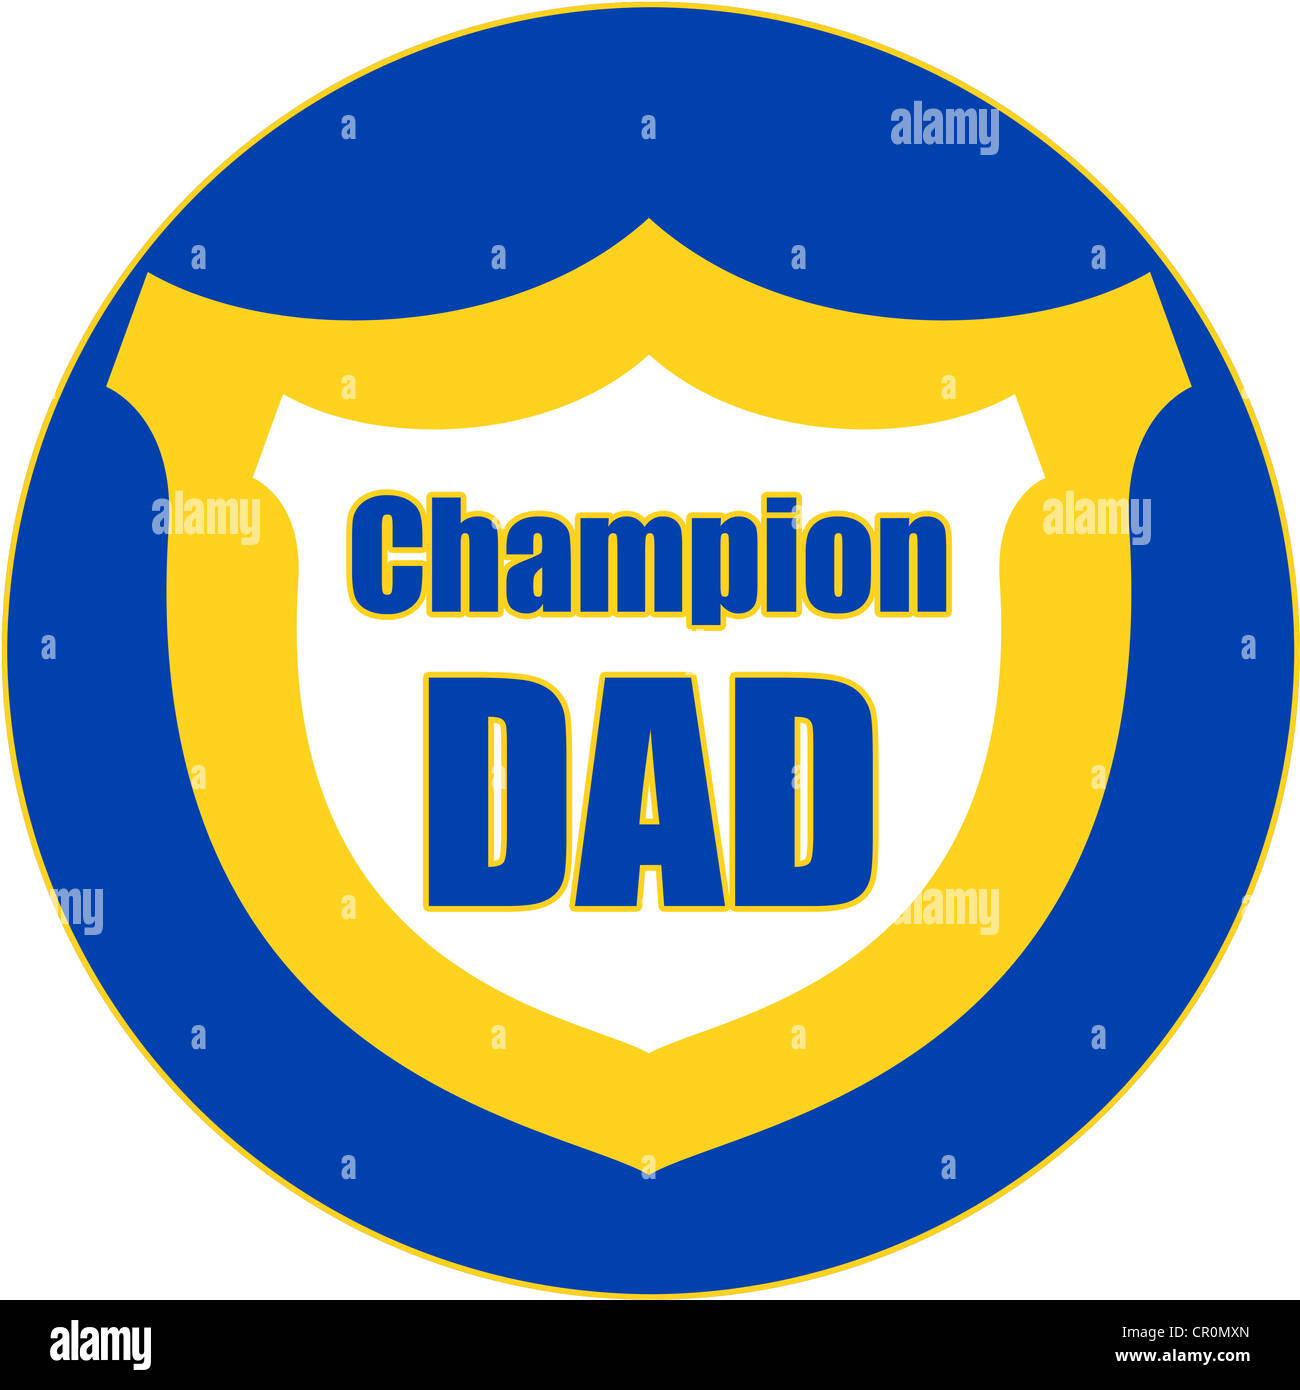 Champion Dad medal in blue, yellow and white Stock Photo